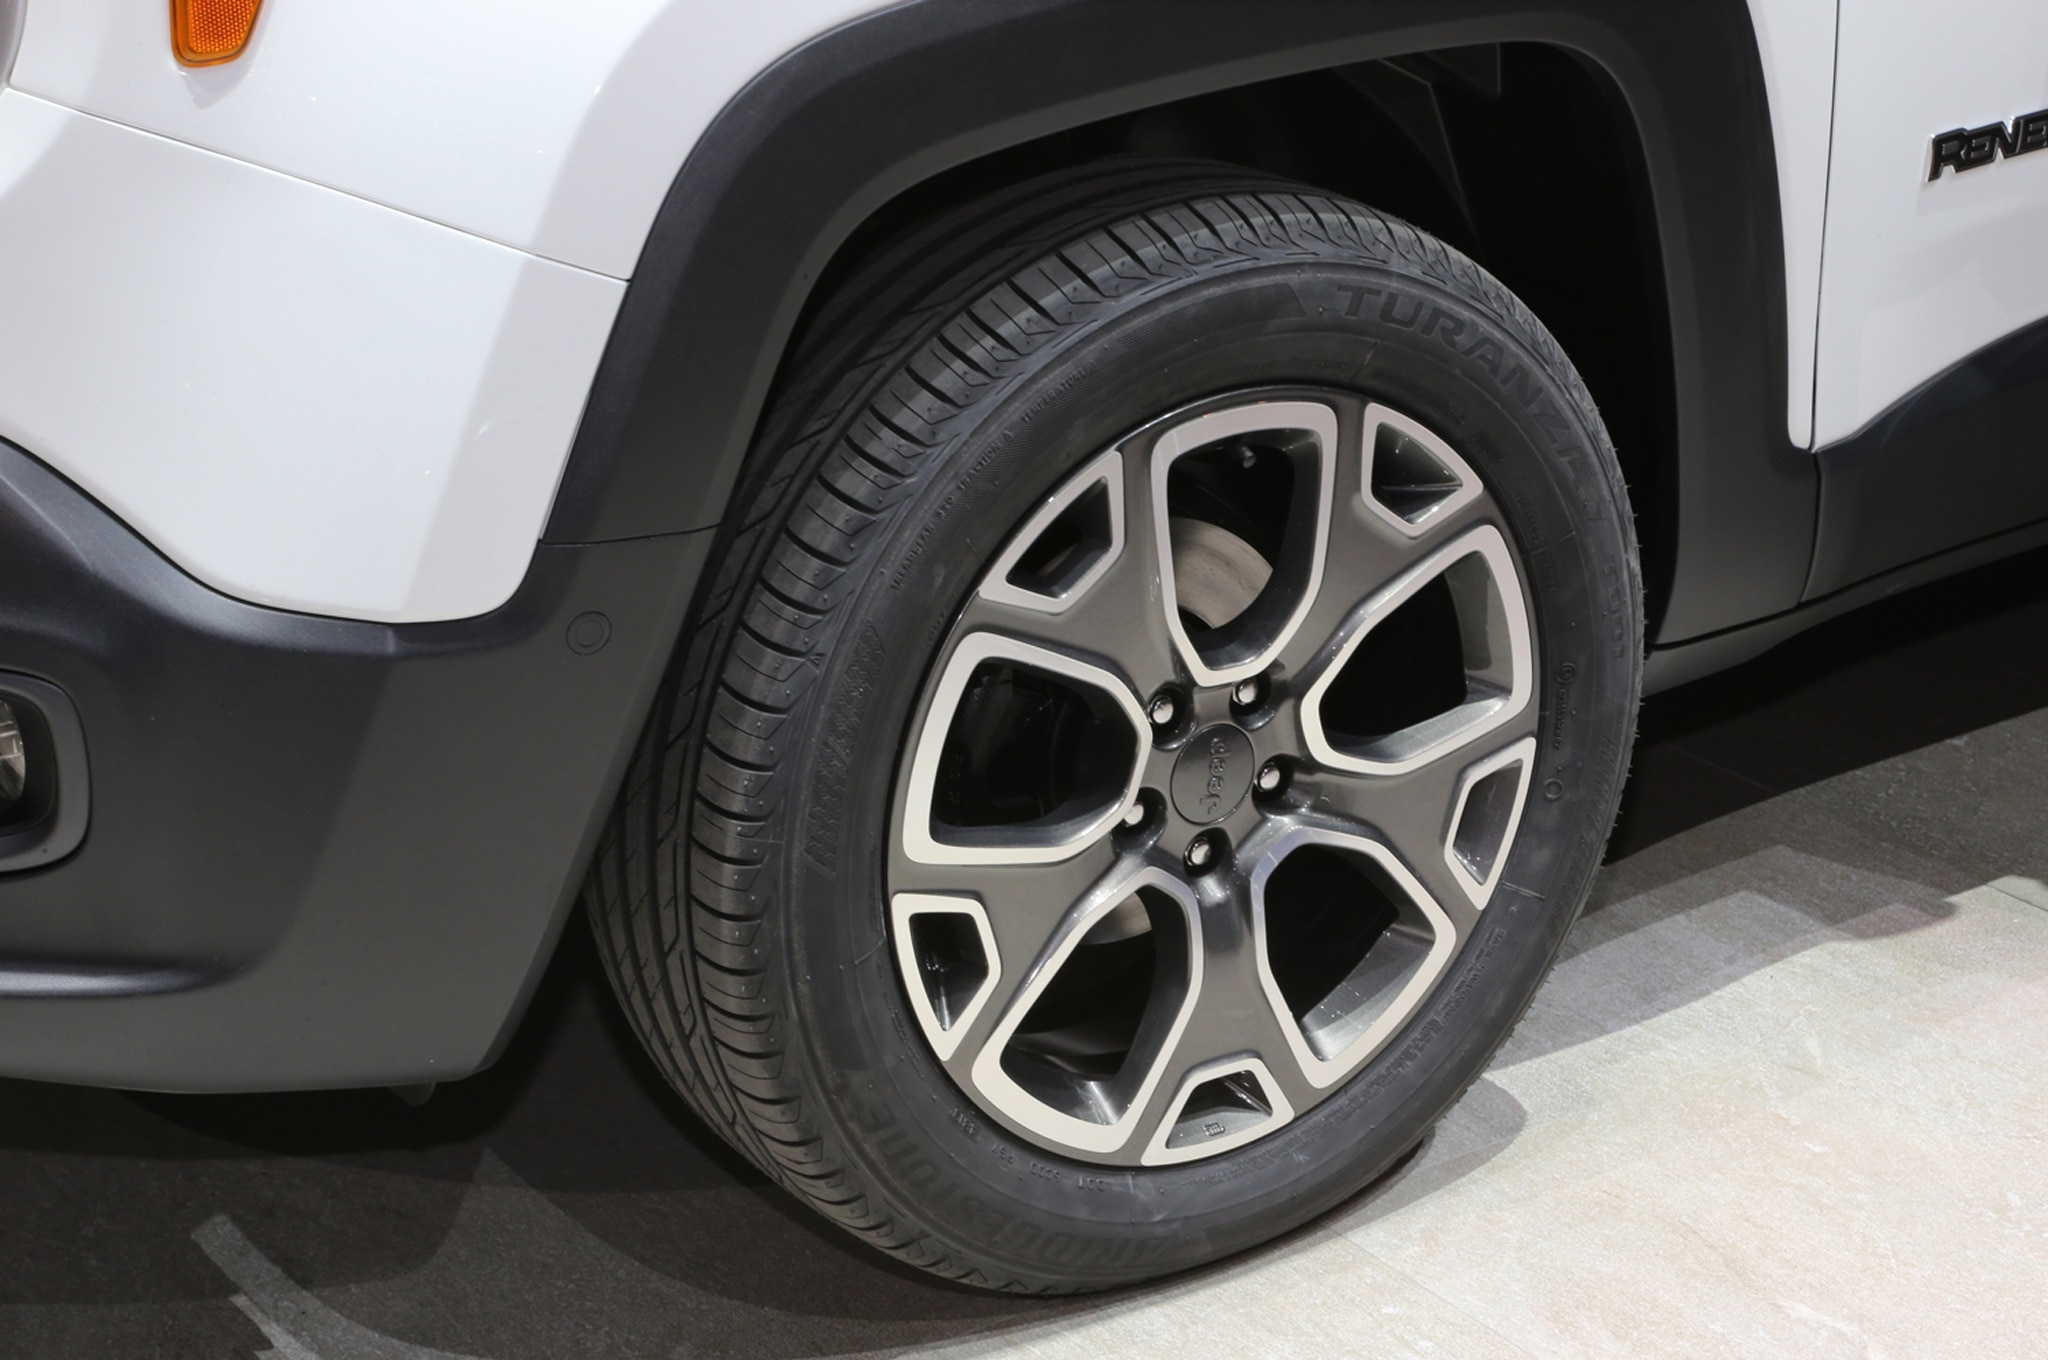 2015 Jeep Renegade Limited wheel